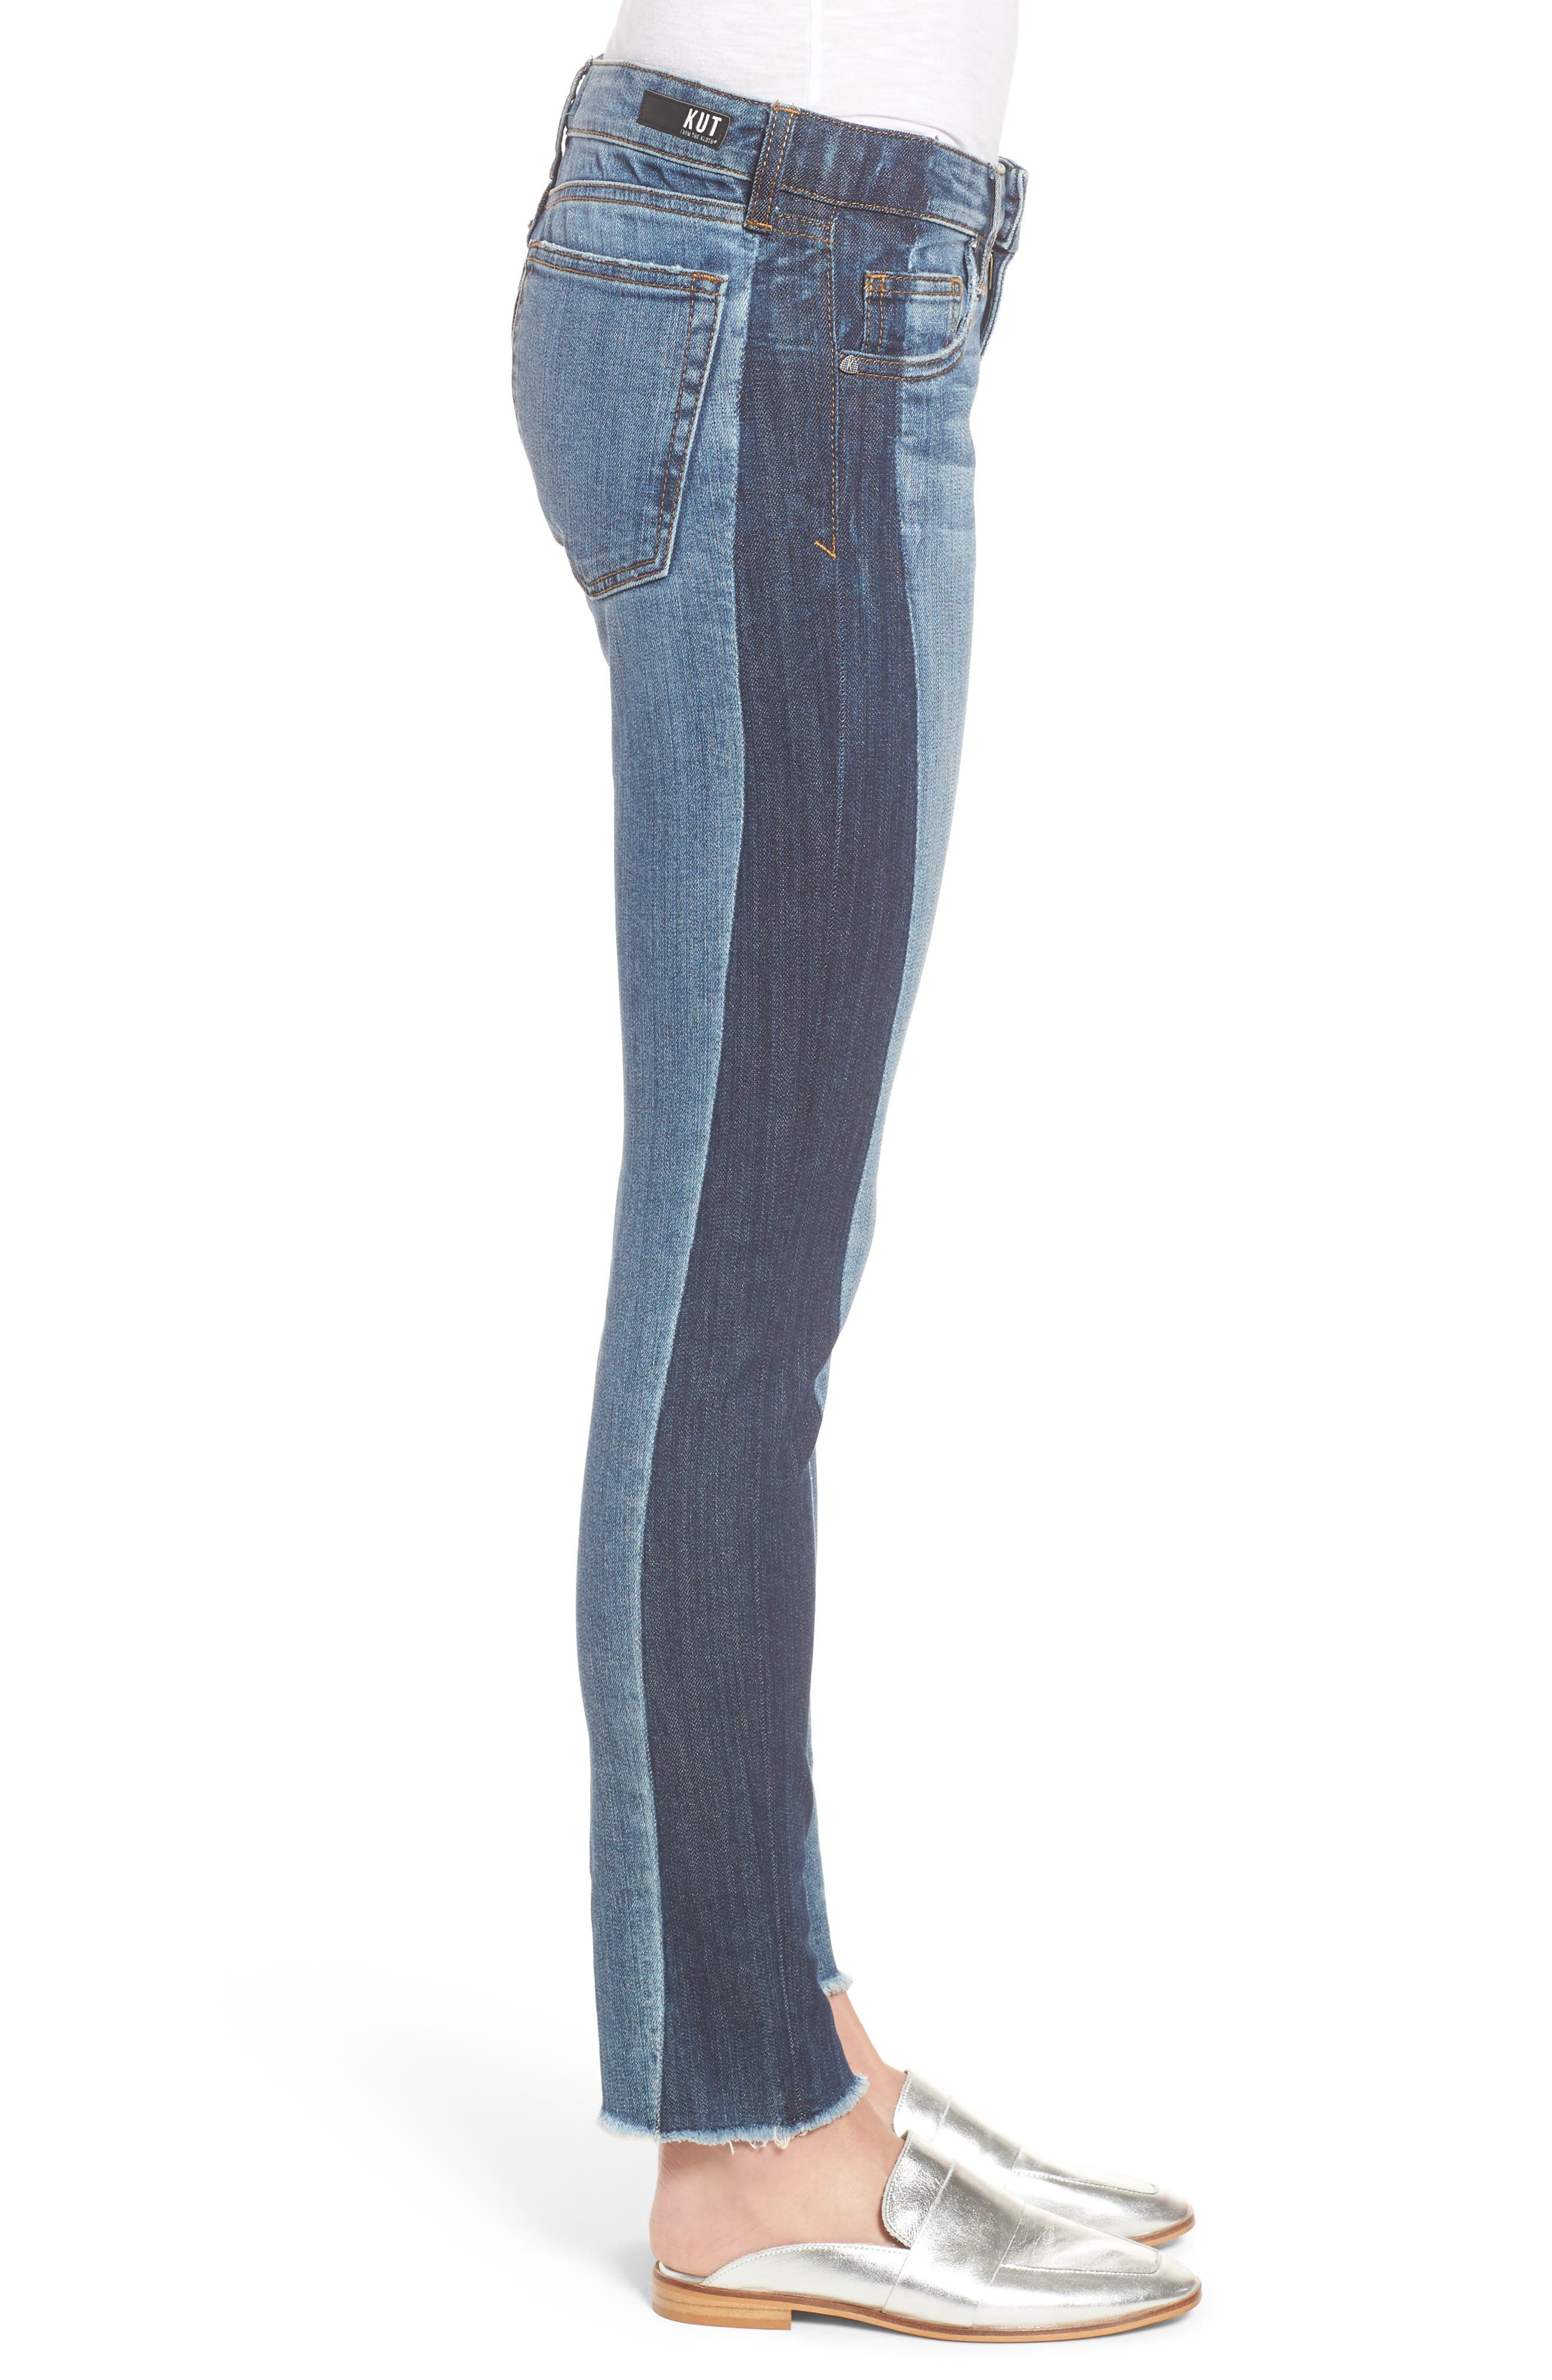 Reese Patch Jeans,                             Alternate thumbnail 3, color,                             460